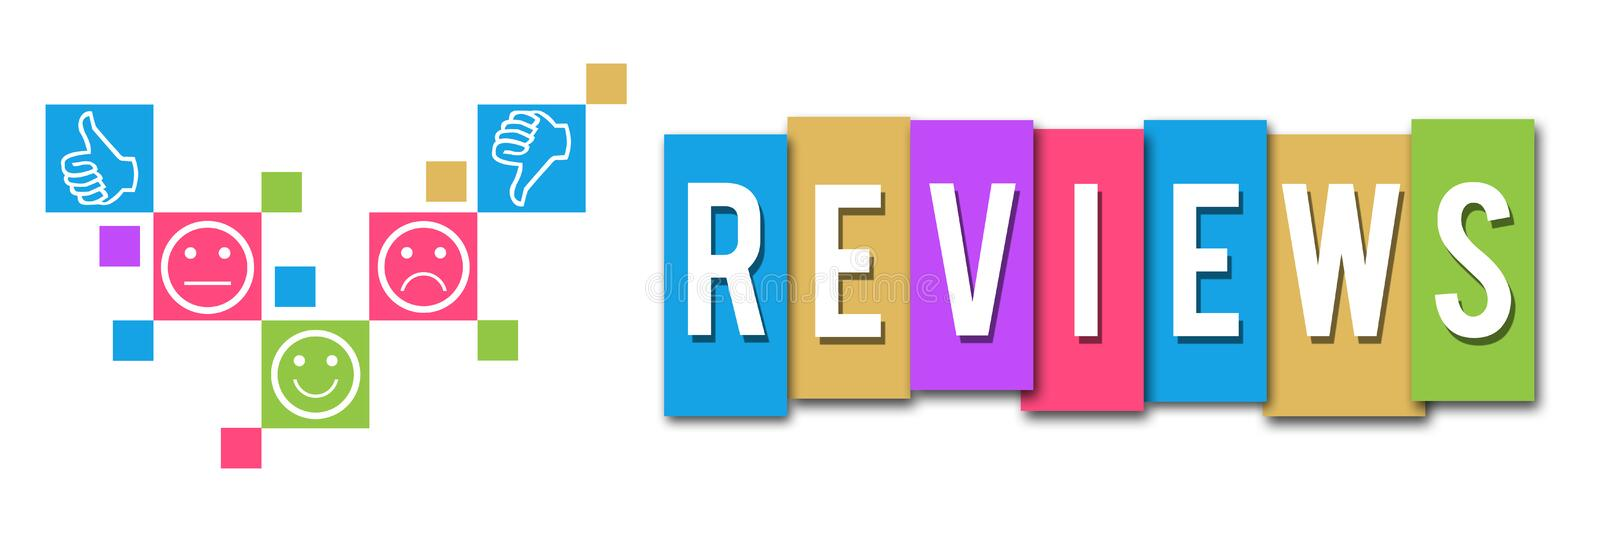 Reviews Colorful Elements Banner. Reviews concept image with text and conceptual elements vector illustration